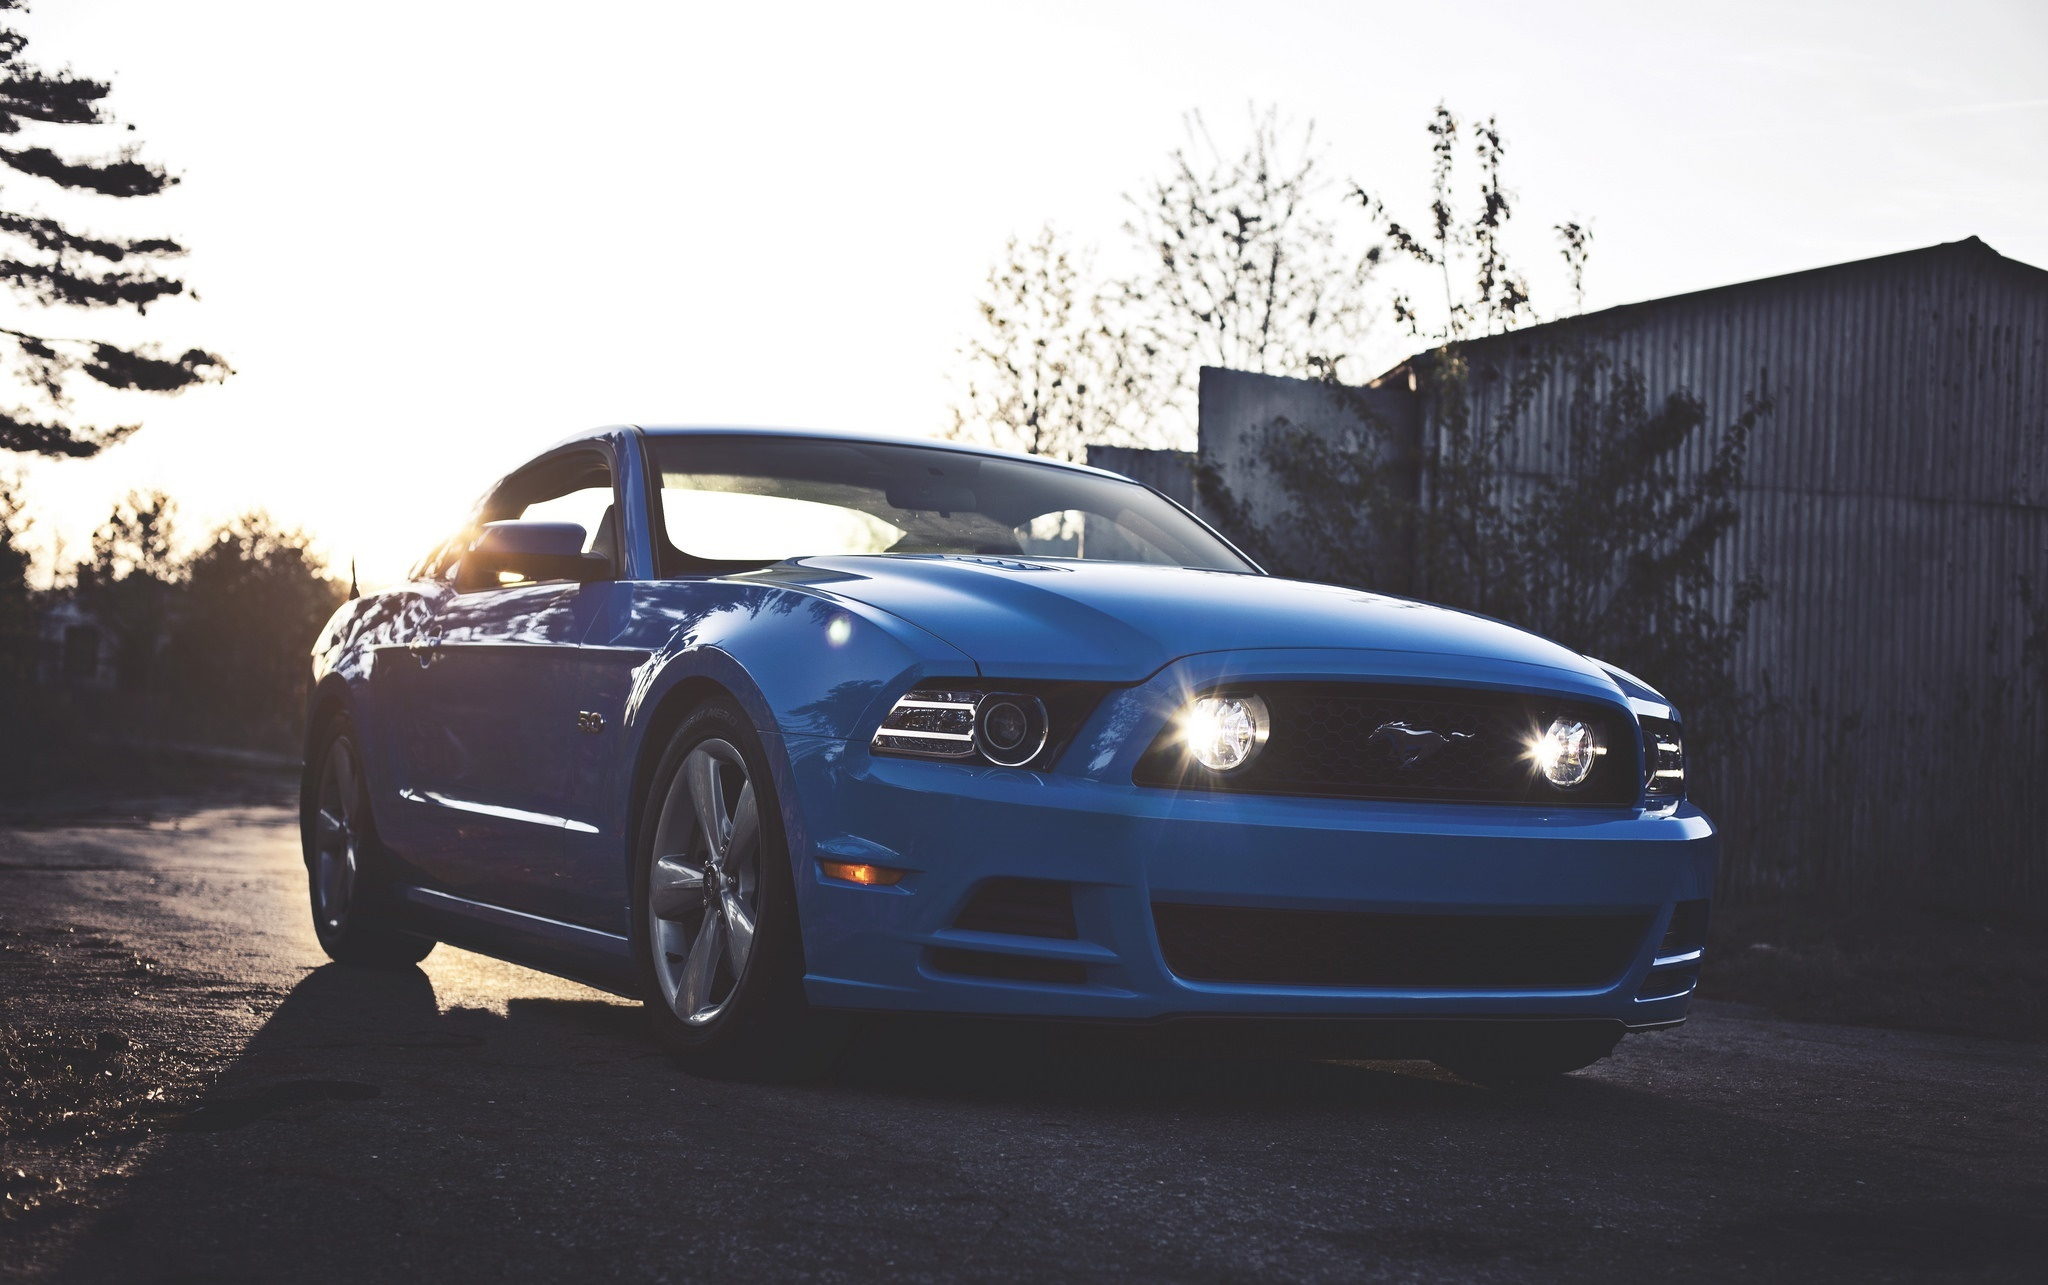 Wallpaper Ford Mustang Gt 5 0 Blue Color Road Desktop Picture Hd